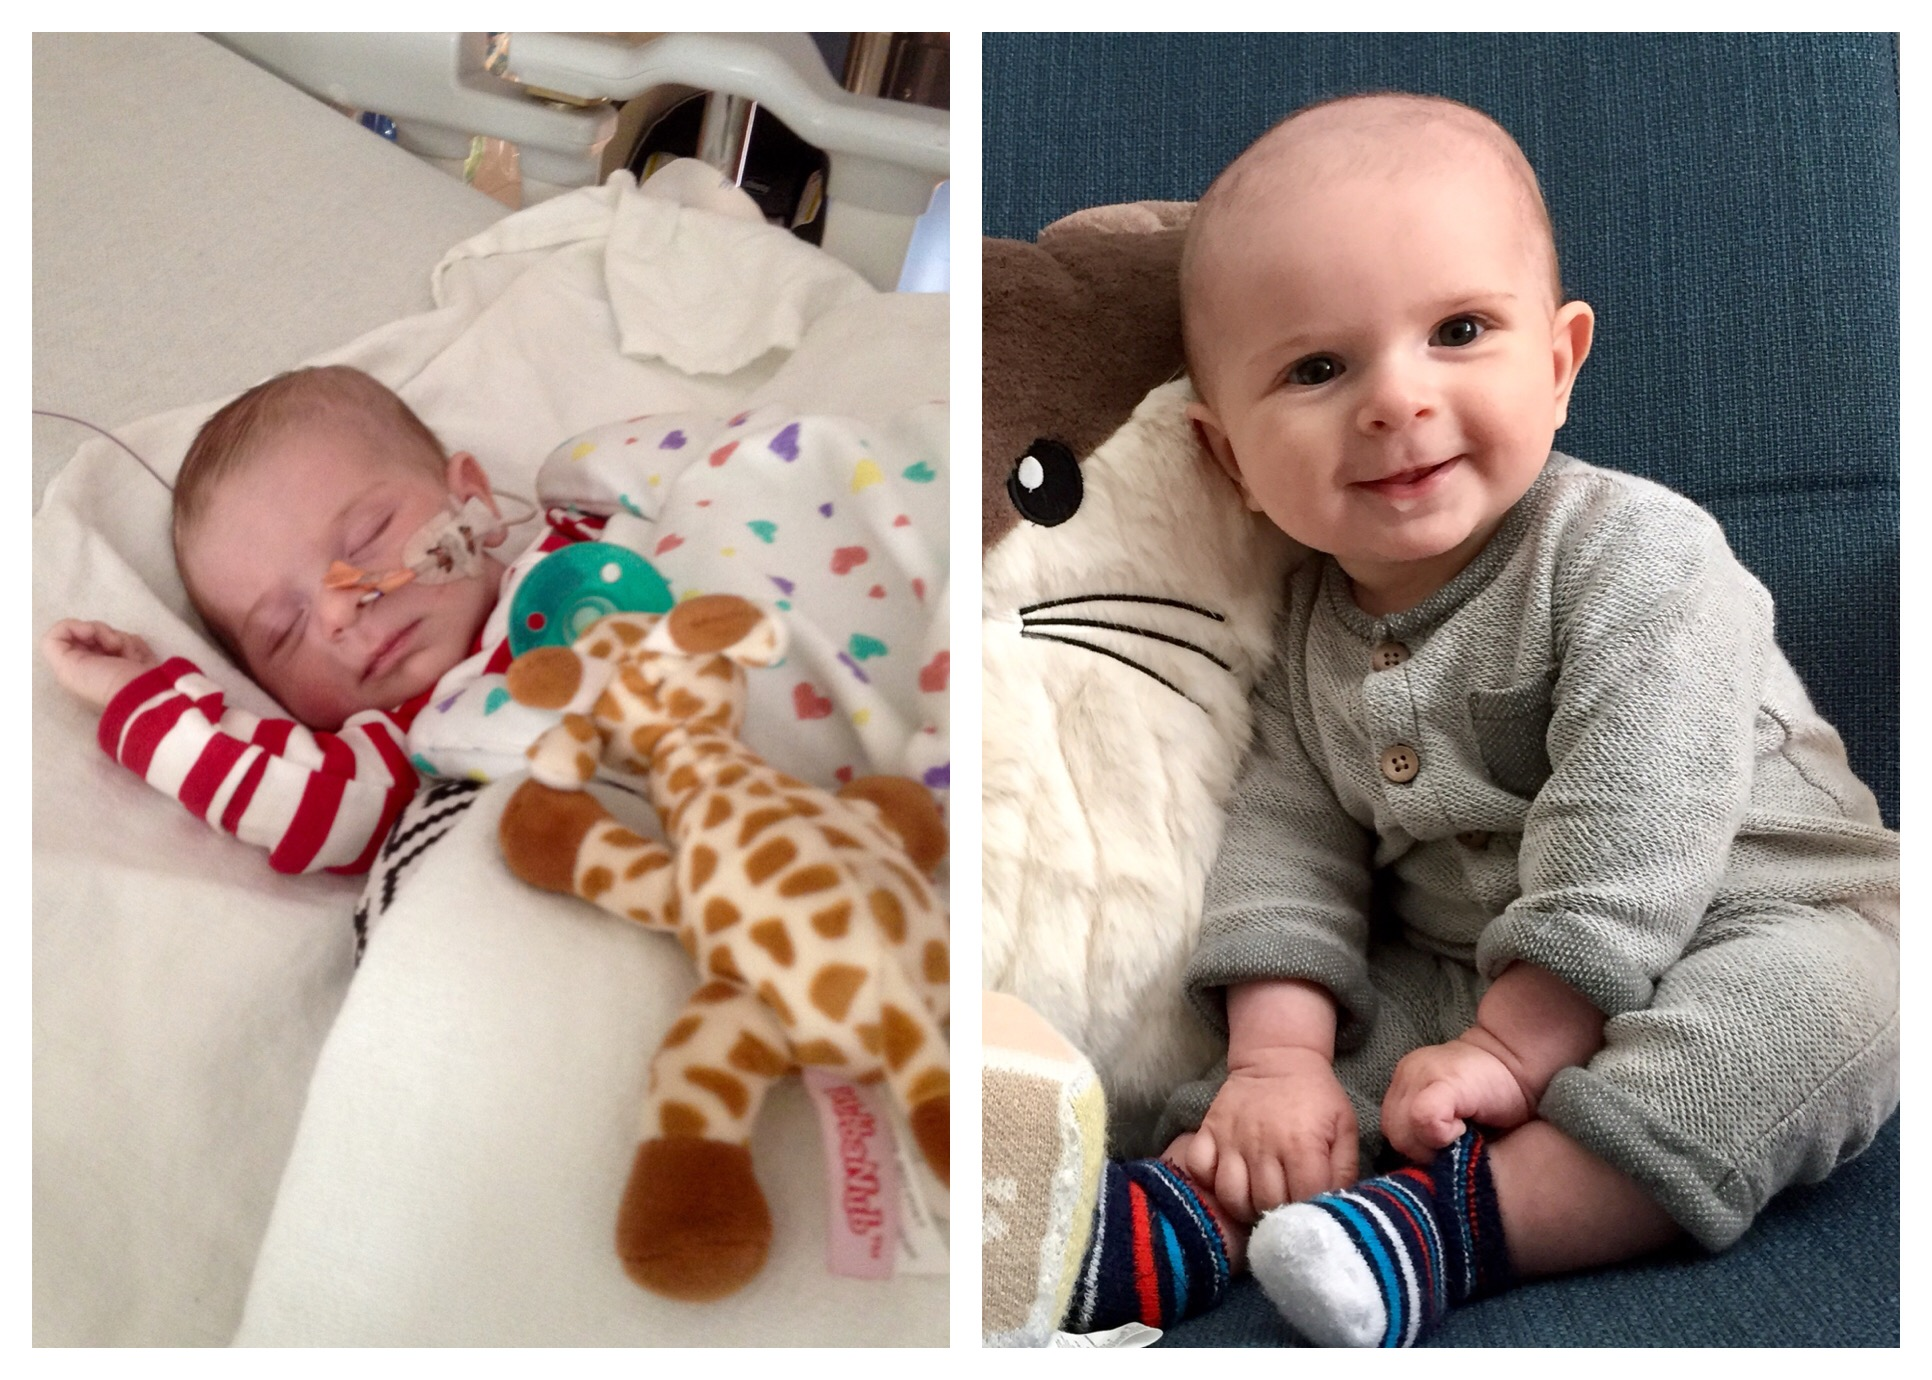 Precious Tanner in the hospital as a newborn (L) and thriving today (R) after finally being diagnosed and treated for his tongue tie.